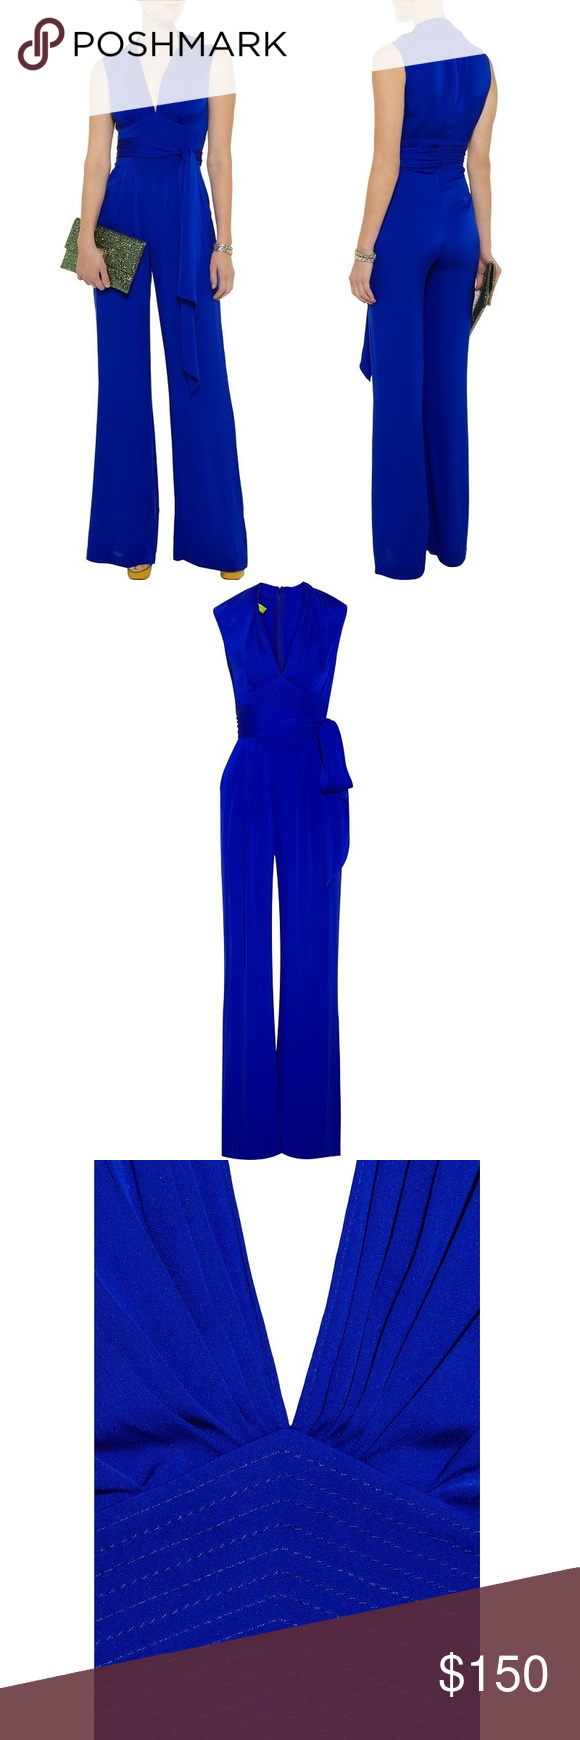 f7b16295e42 Catherine Malandrino Blue Belted Silk Jumpsuit This wide-leg silk jumpsuit  features a deep V